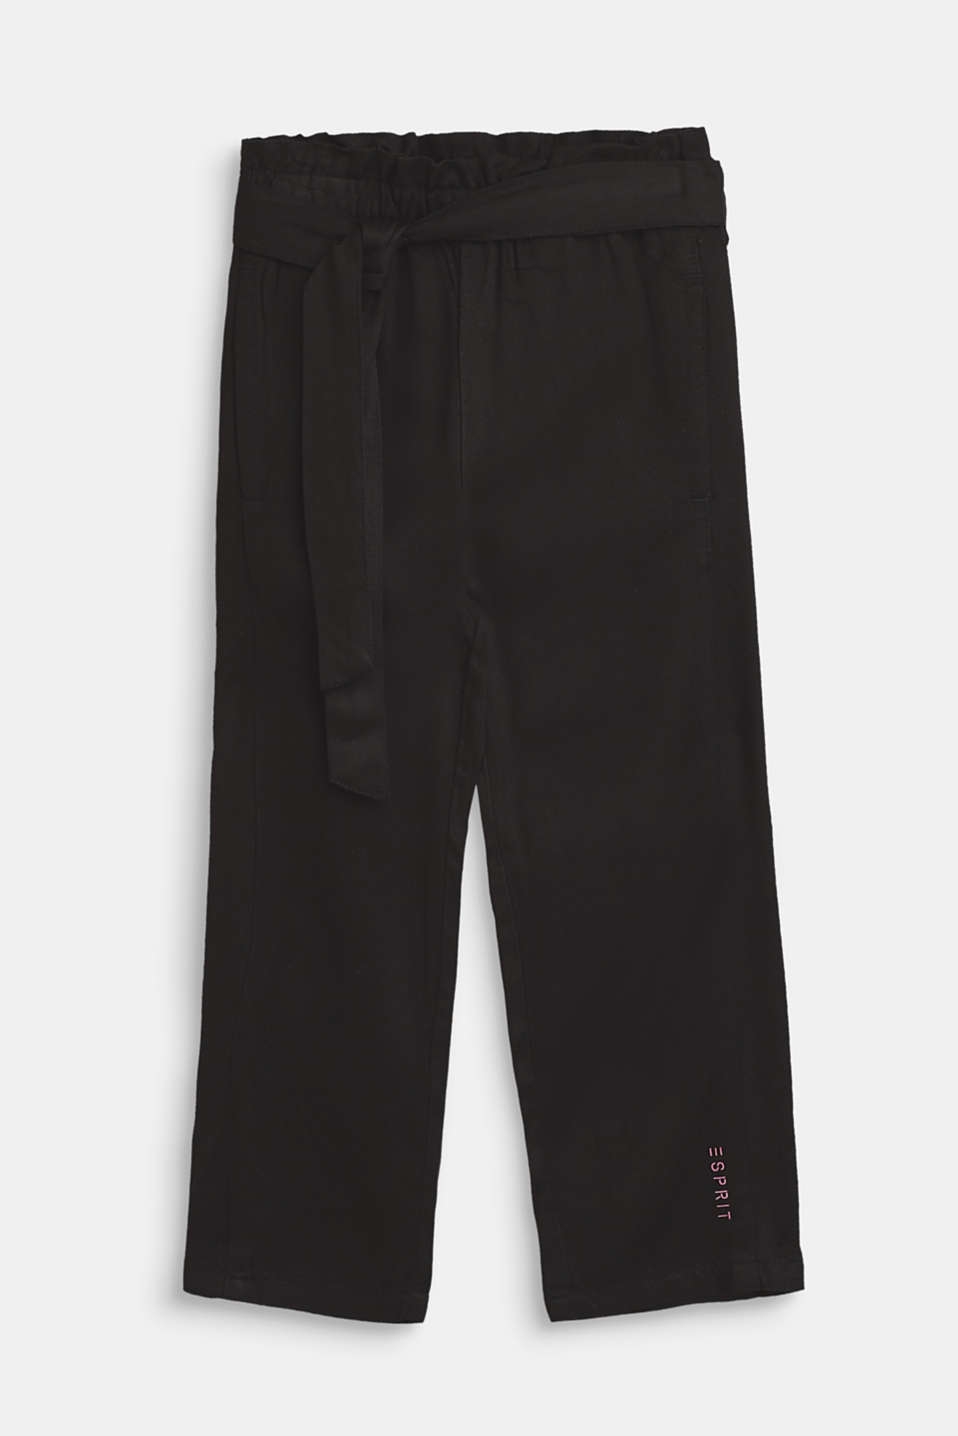 Esprit - Flowing trousers in a paper bag style